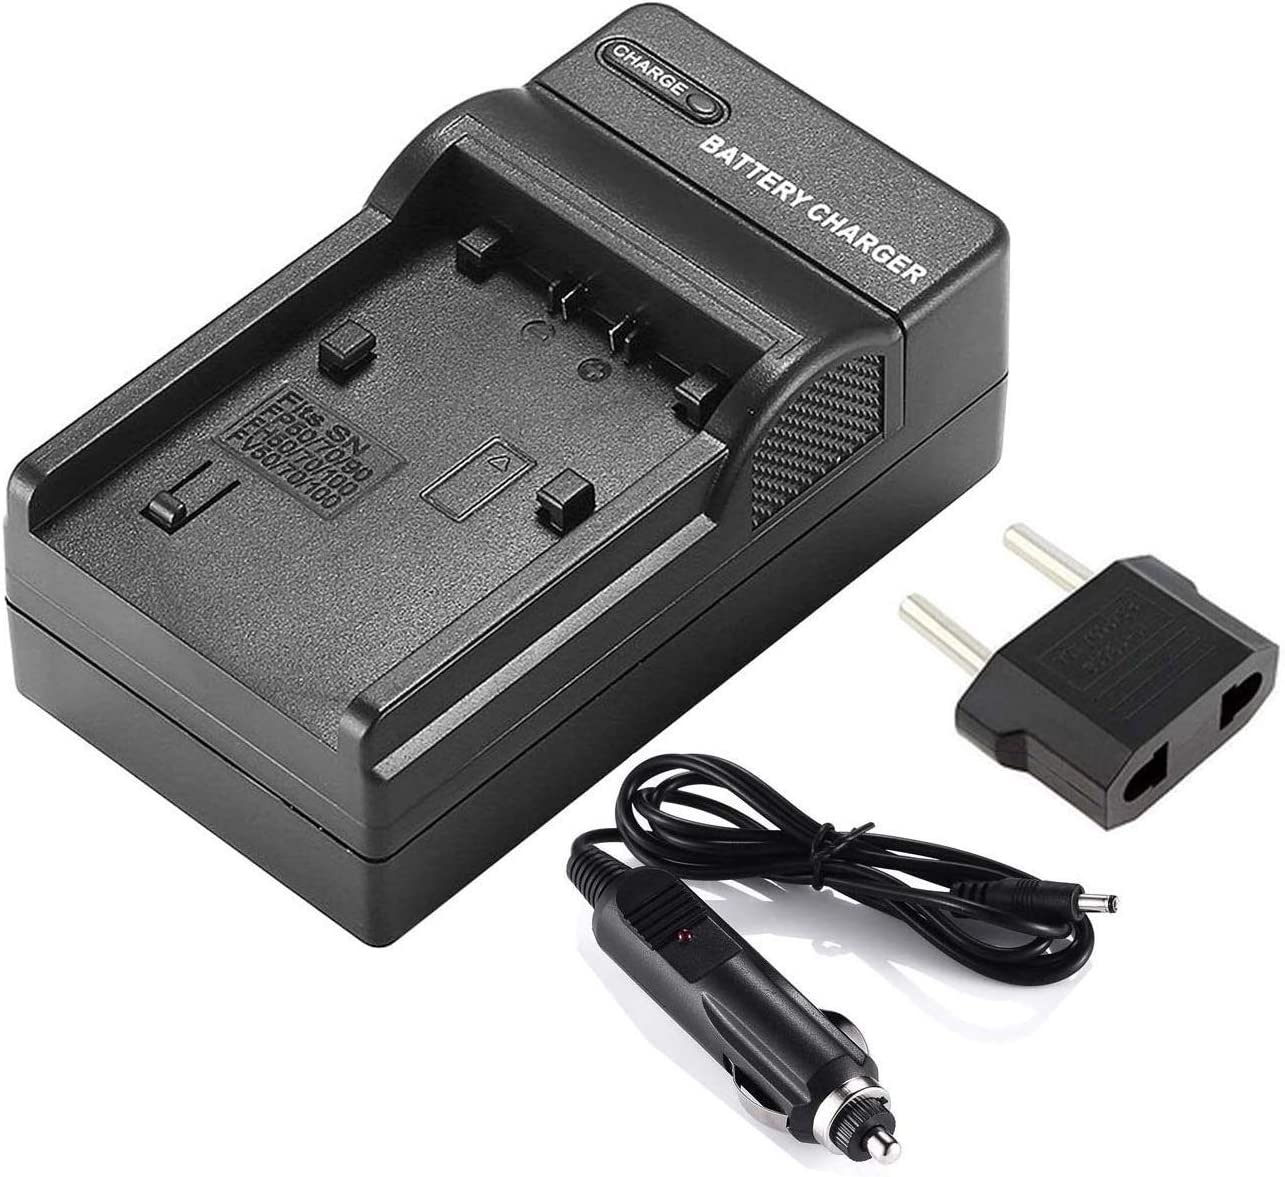 DCR-SX21 DCR-SX65 DCR-SX34 DCR-SX44 DCR-SX85 Handycam Camcorder DCR-SX45 DCR-SX22 LCD Quick Battery Charger for Sony DCR-SX20